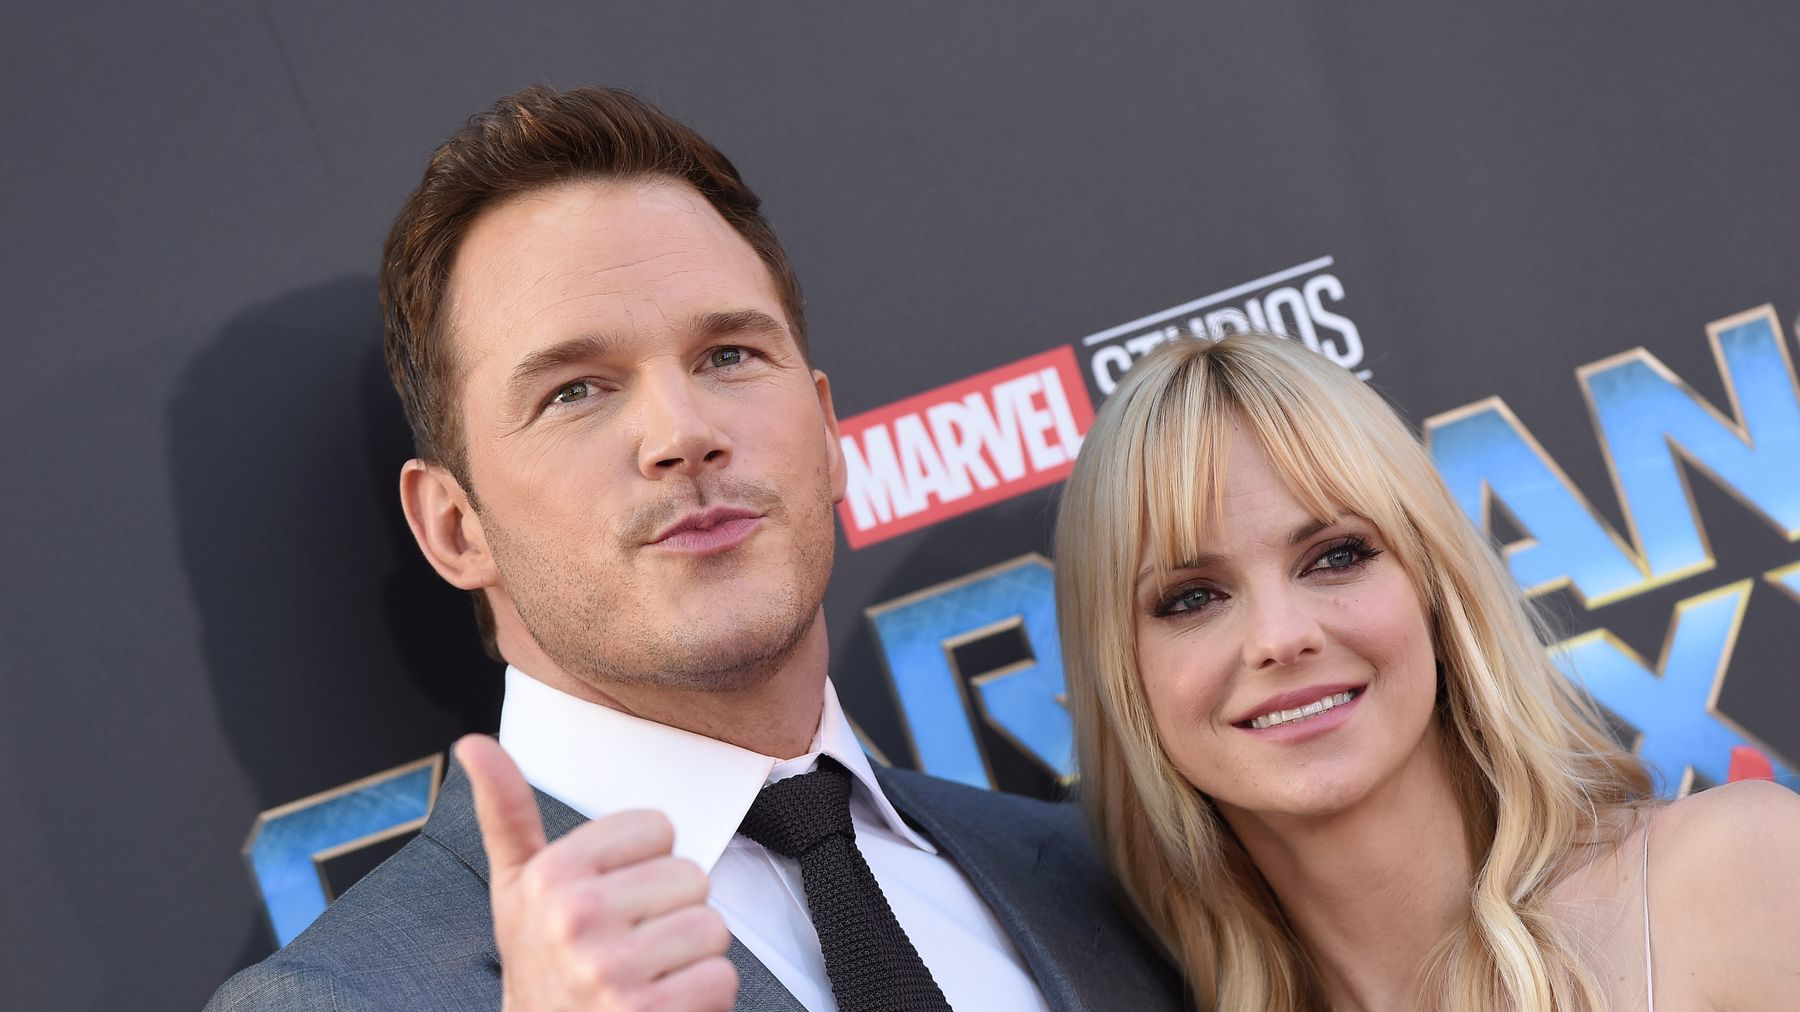 Anna Faris Chris Pratt Wedding.What Can We Learn From Anna Faris Offering To Marry Chris Pratt And